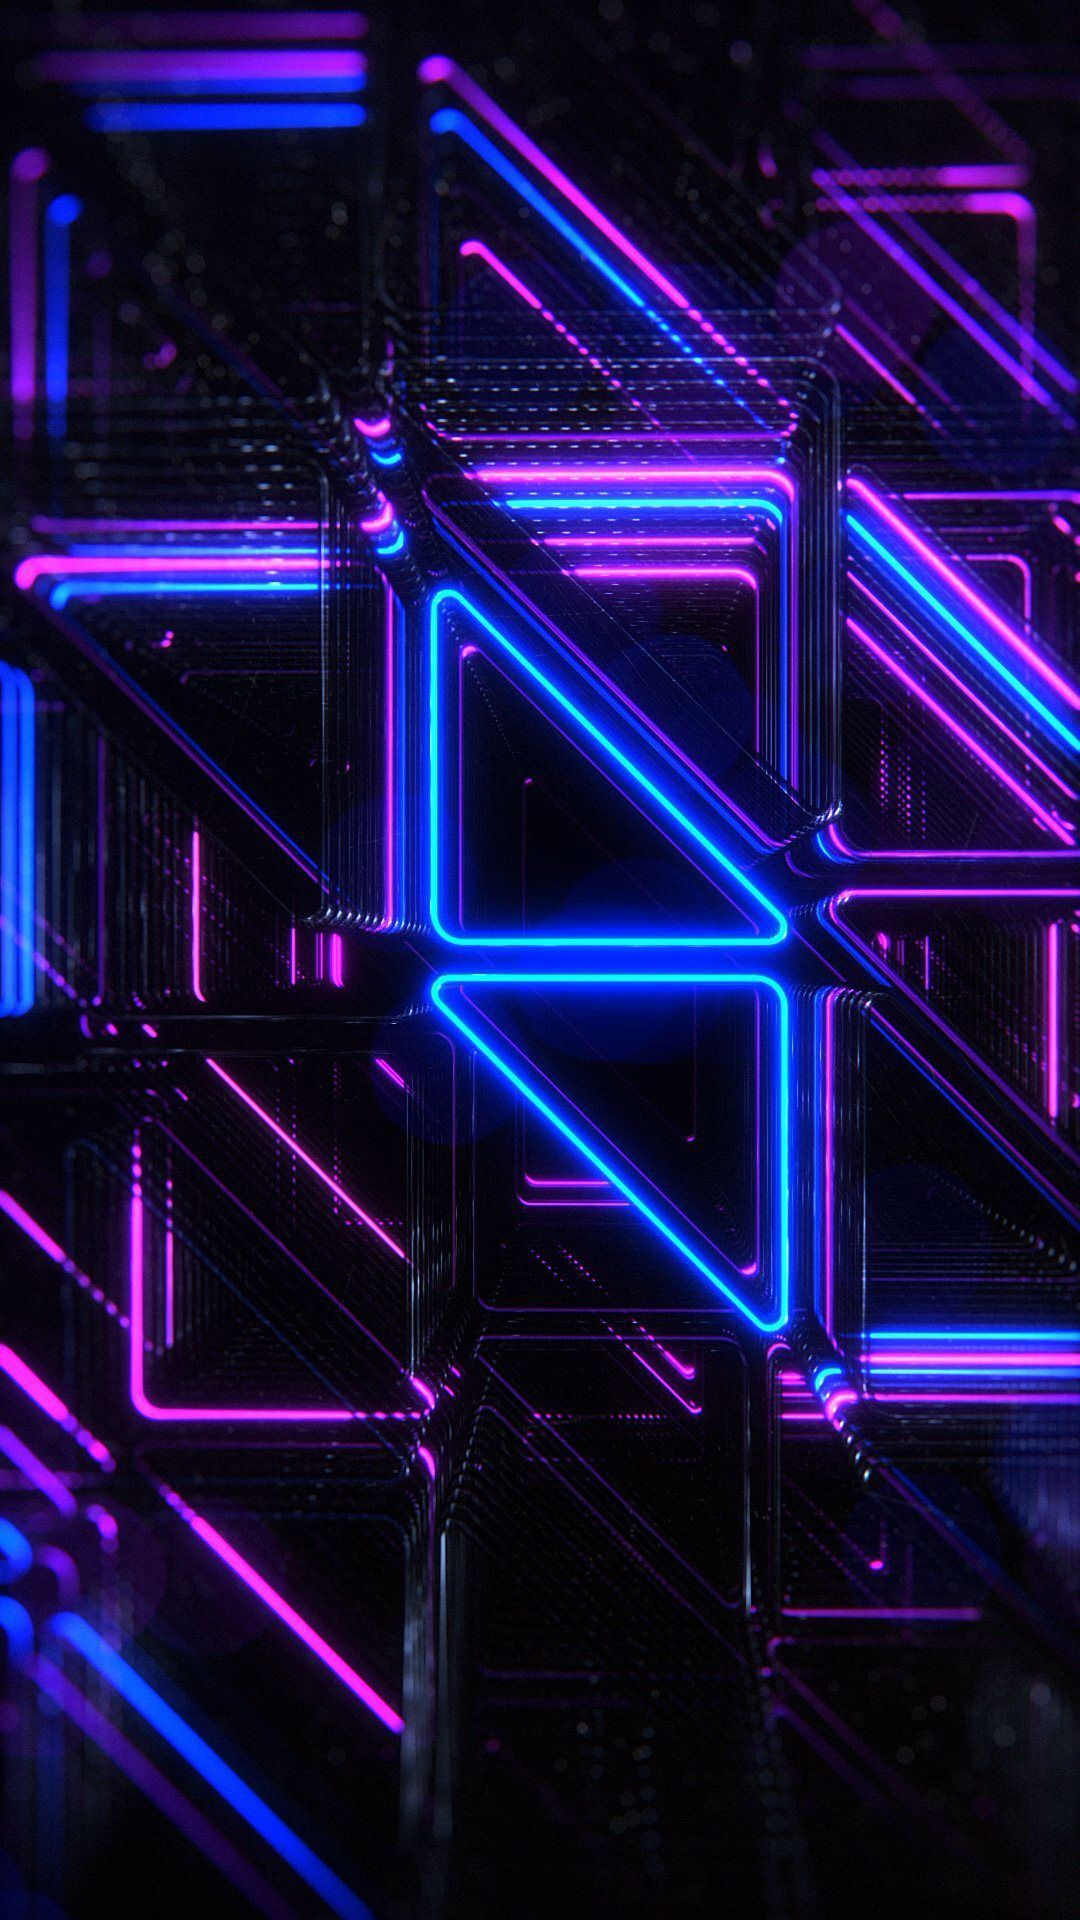 Aesthetic Black And Purple Wallpaper Android In 2020 Neon Wallpaper Iphone Background Art Black And Purple Wallpaper